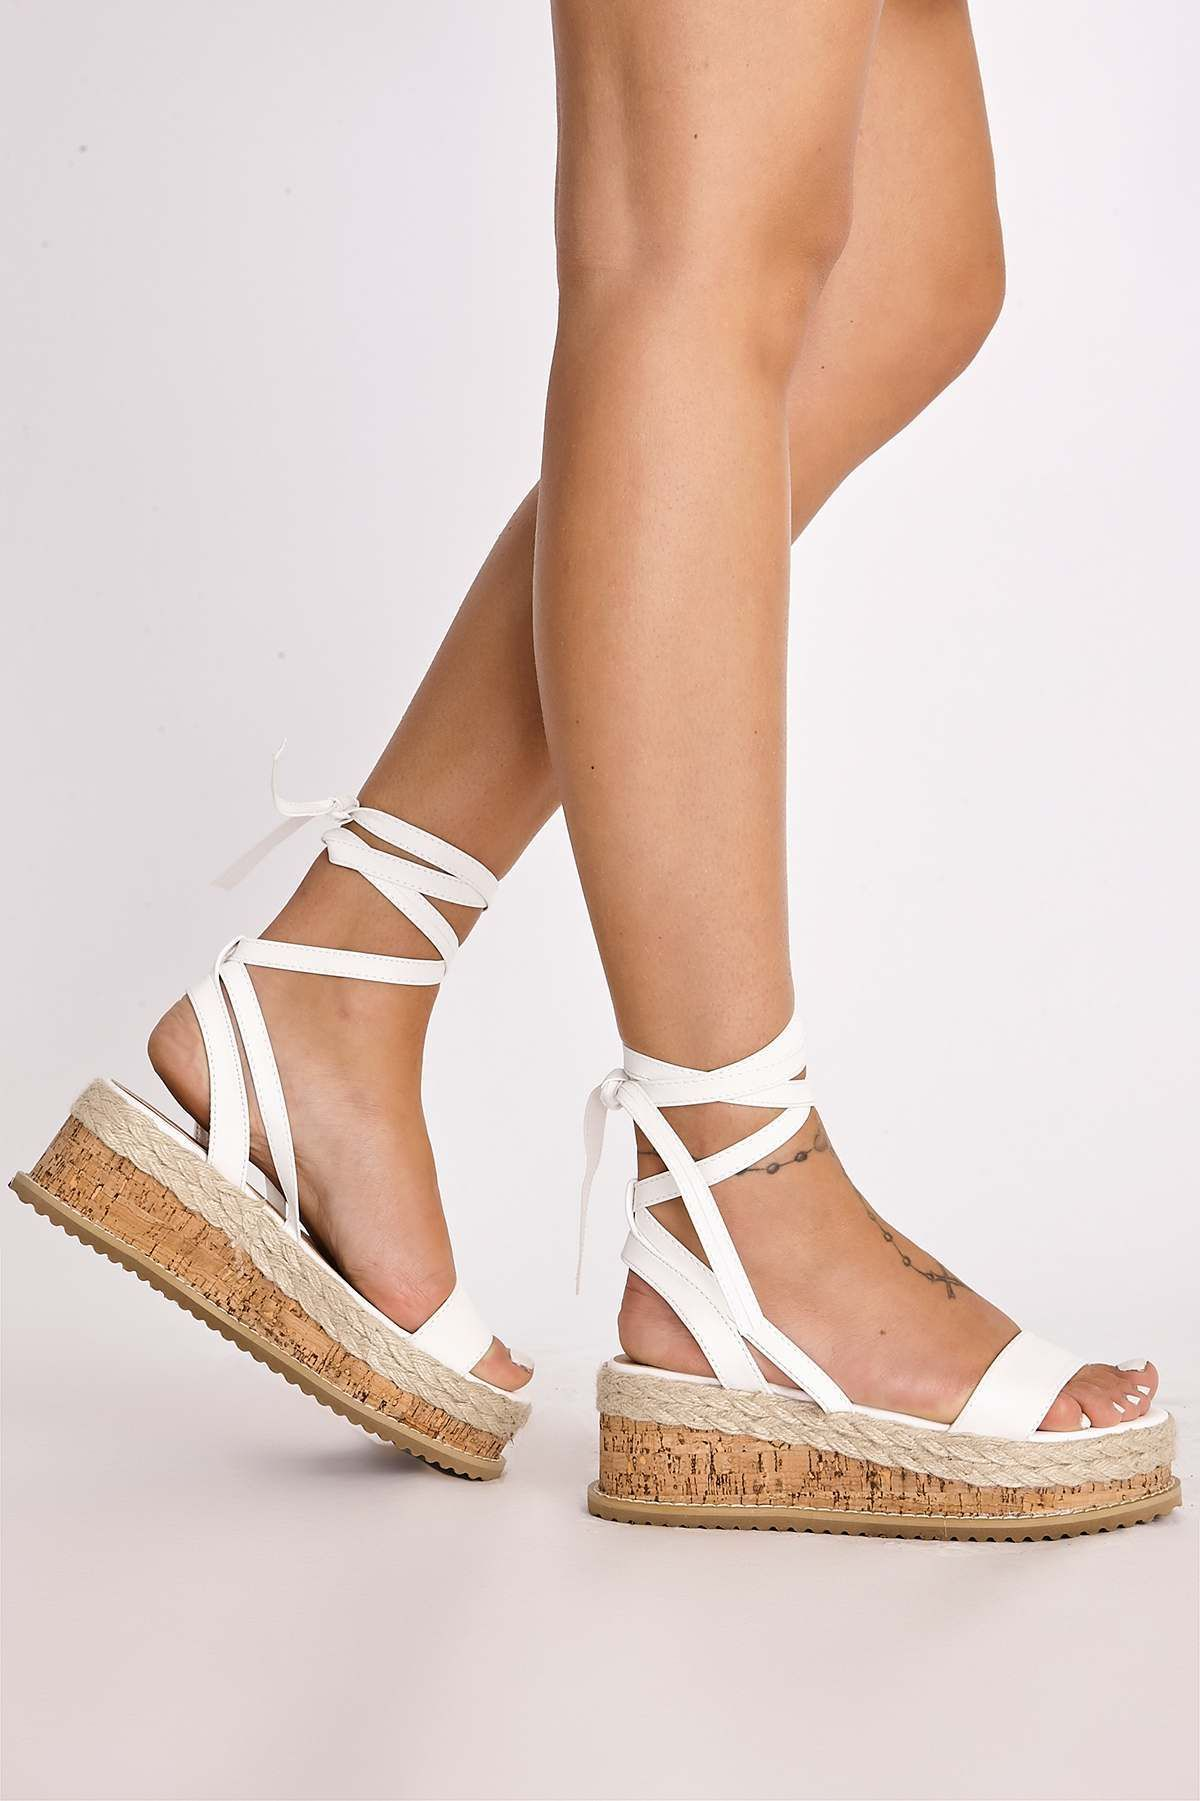 f302c1d72 Check these flatform tie up sandals out! The perfect summer footwear to  complete any outfit.